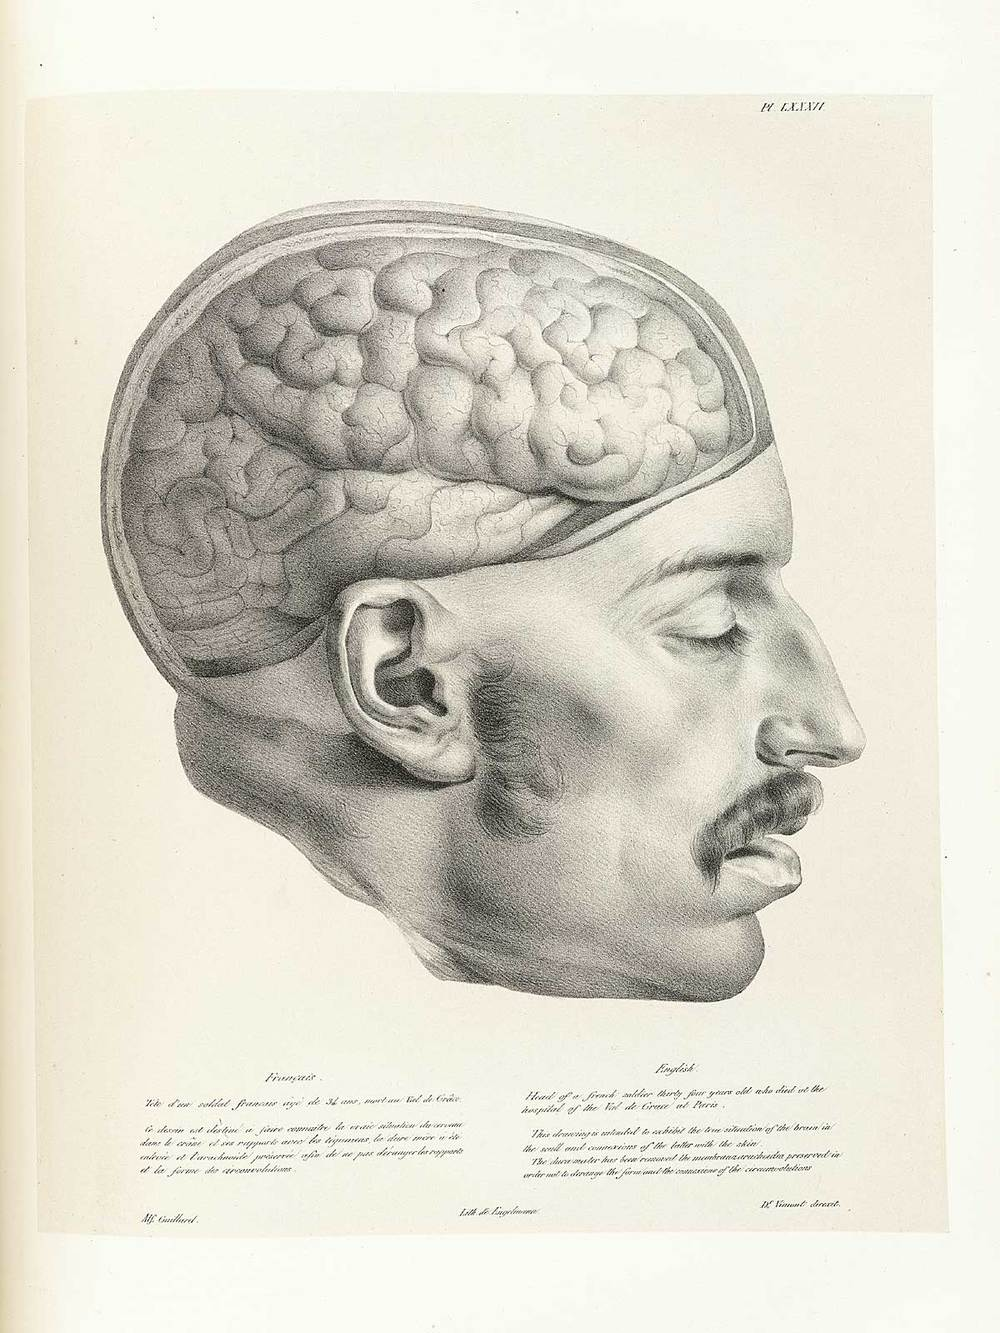 I mage from: http://www.nlm.nih.gov/exhibition/historicalanatomies/vimont_home.html